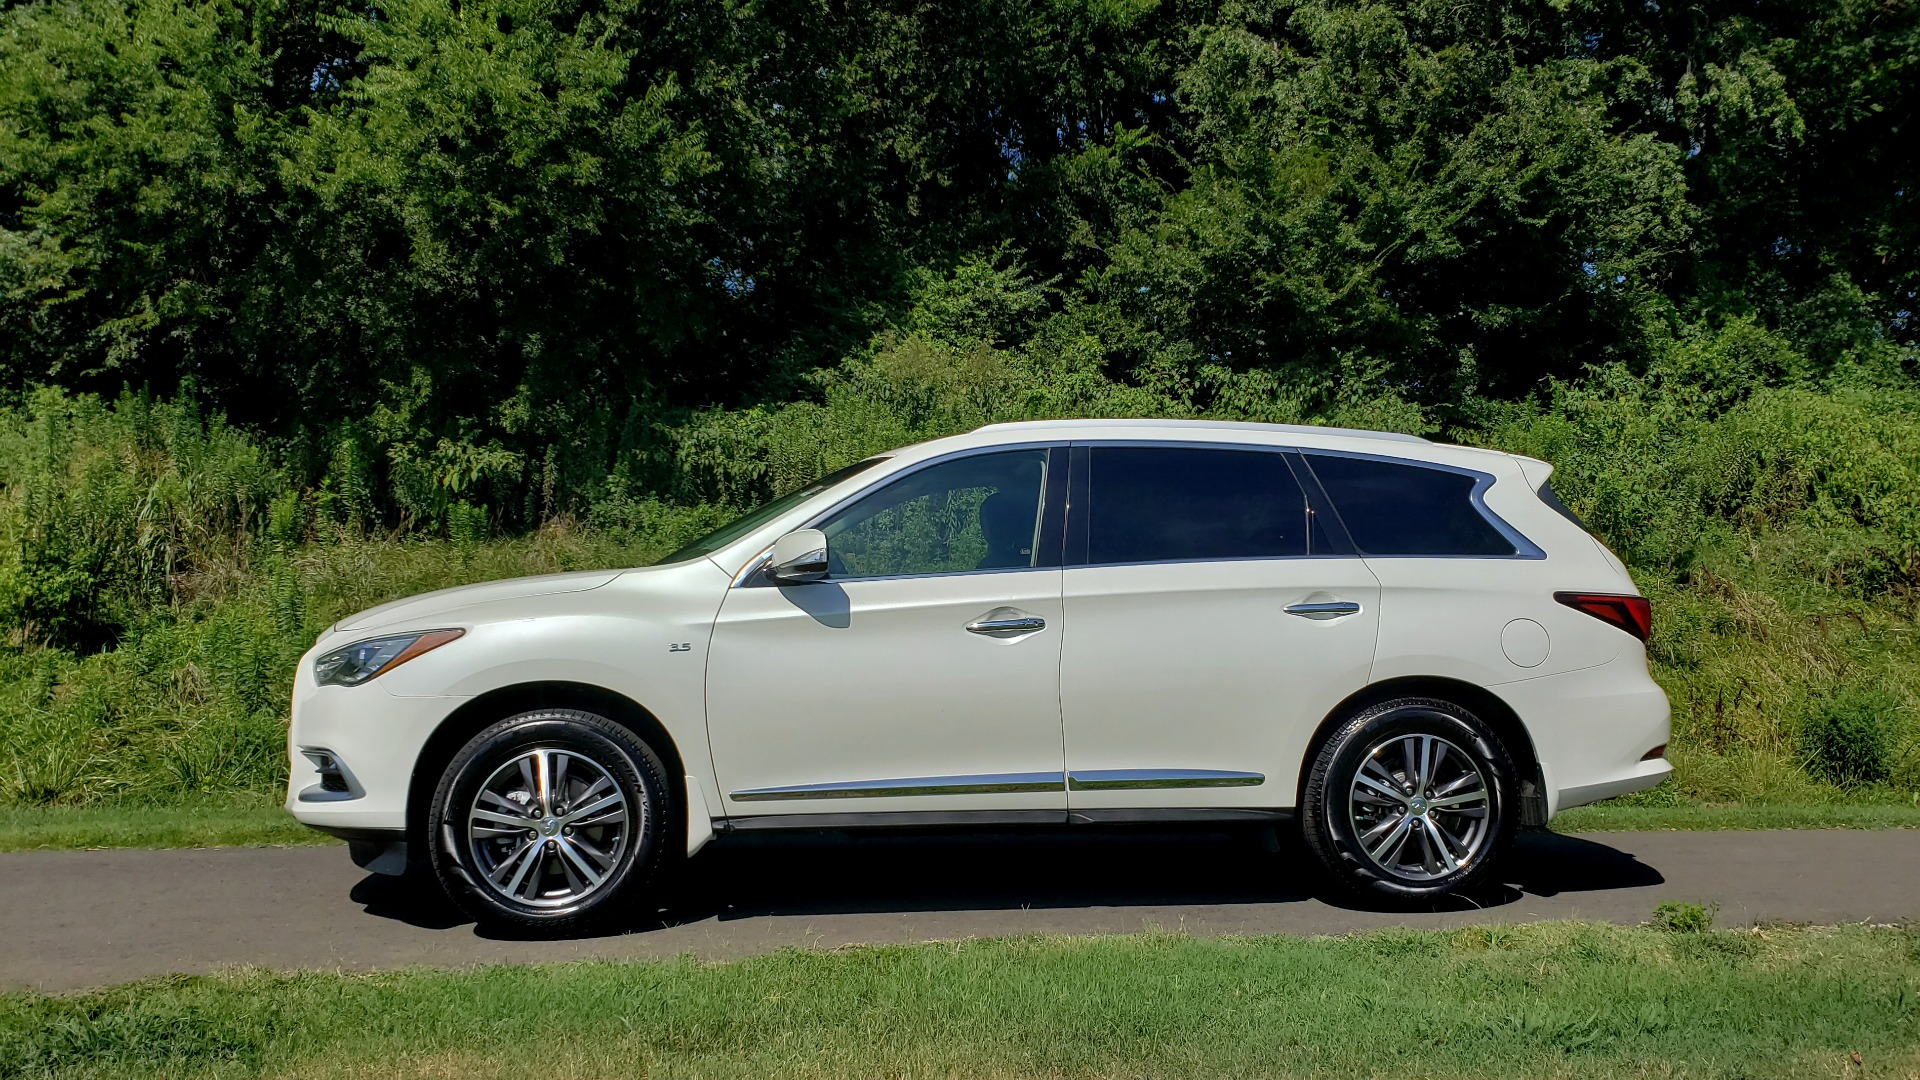 Used 2016 Infiniti QX60 AWD / 3.5L V6 / SUNROOF / HTD STS / 3-ROW / TOWING / REARVIEW for sale Sold at Formula Imports in Charlotte NC 28227 4